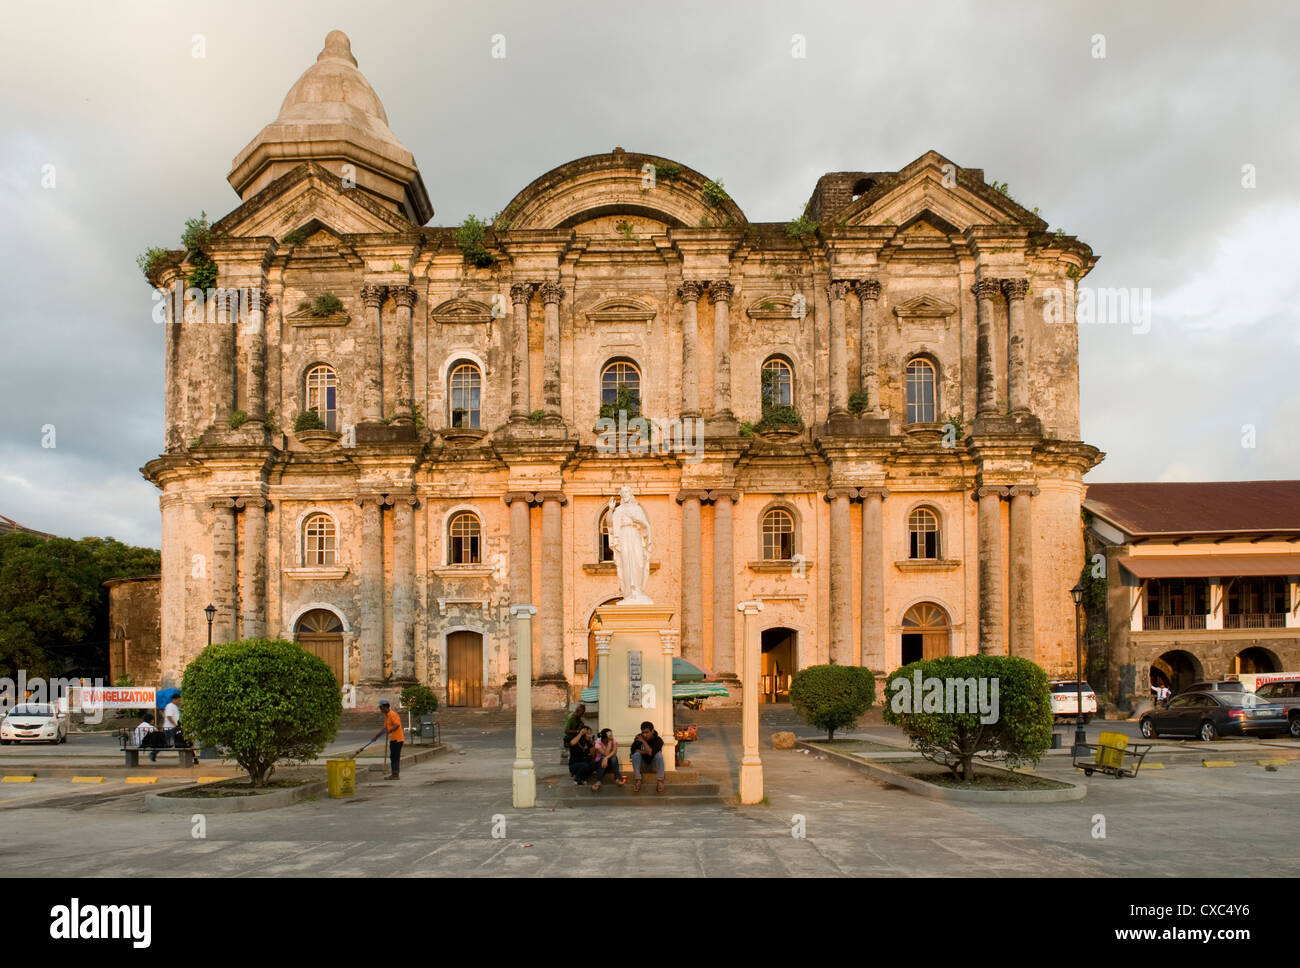 Taal Basilica dating from 1856, the largest church in the Philippines, Philippines, Southeast Asia, Asia - Stock Image